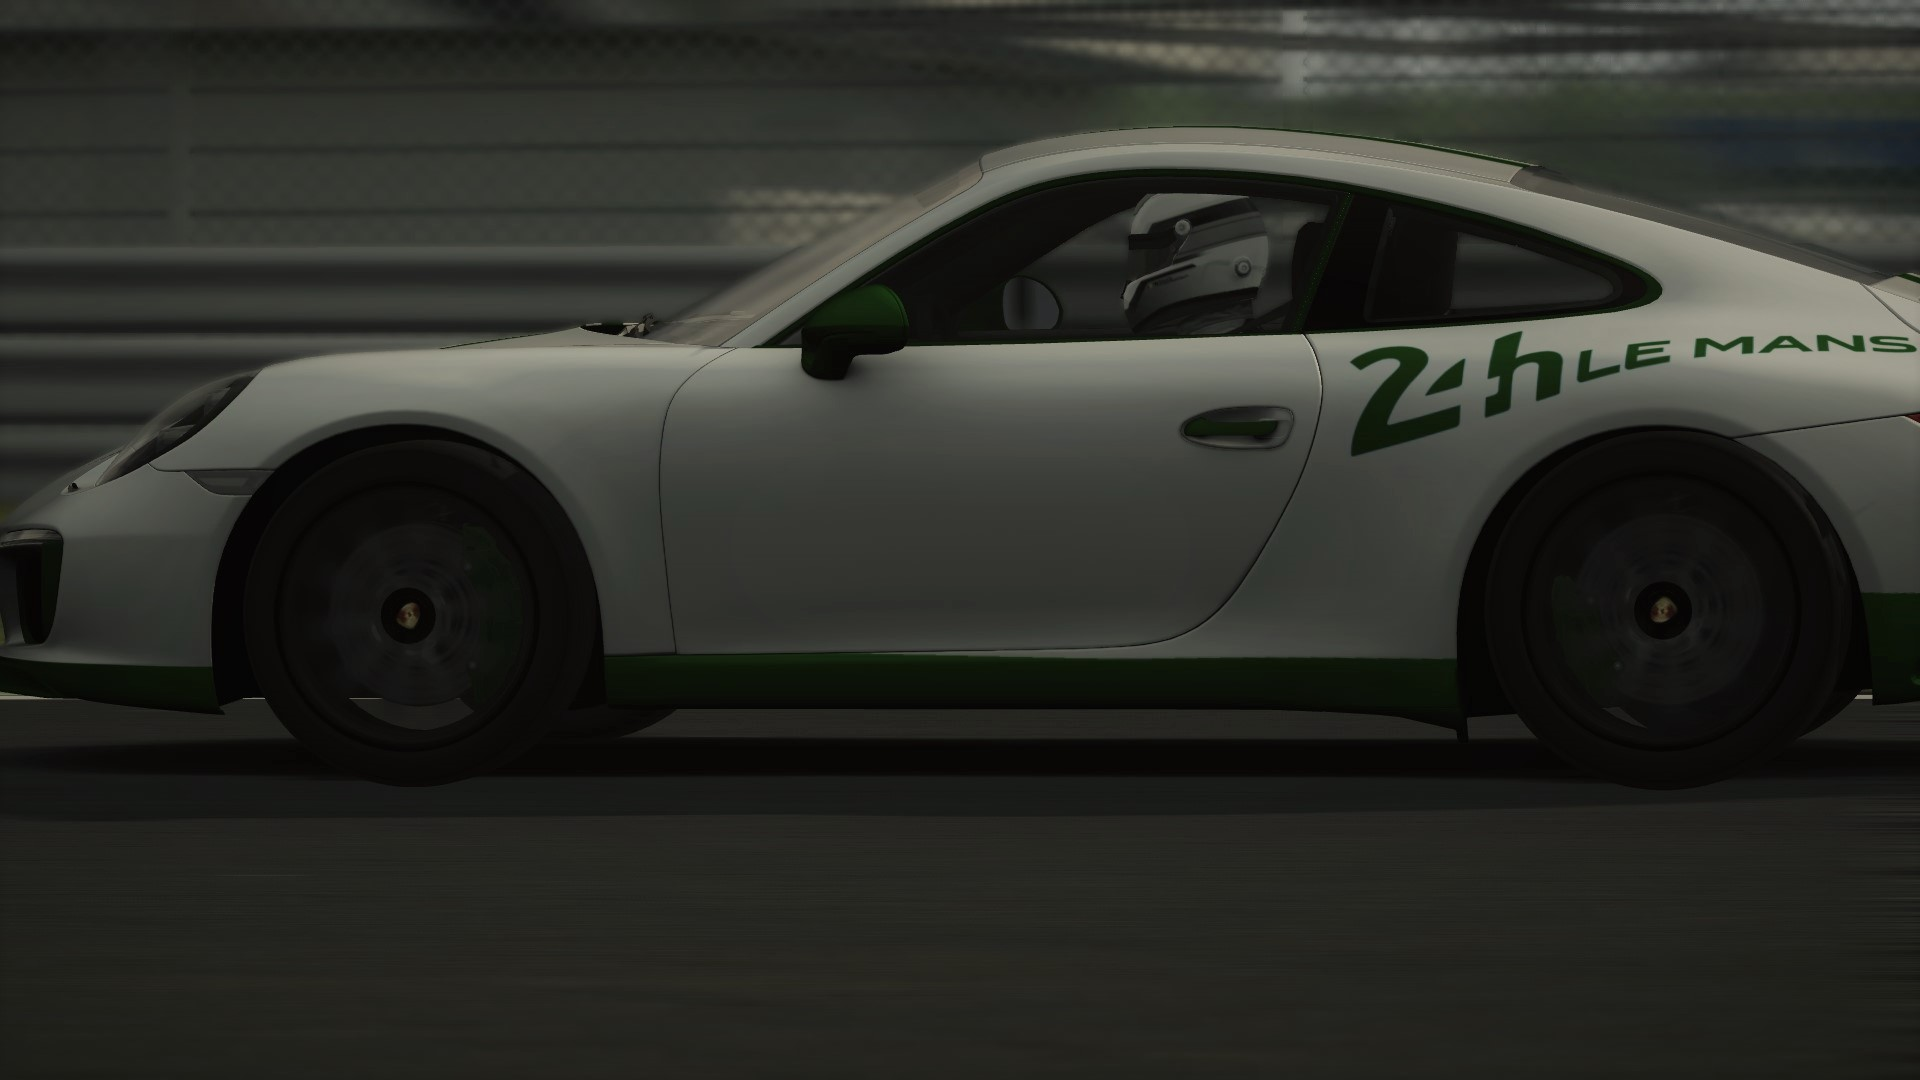 Screenshot_ks_porsche_991_carrera_s_ks_silverstone_9-12-116-13-8-15.jpg